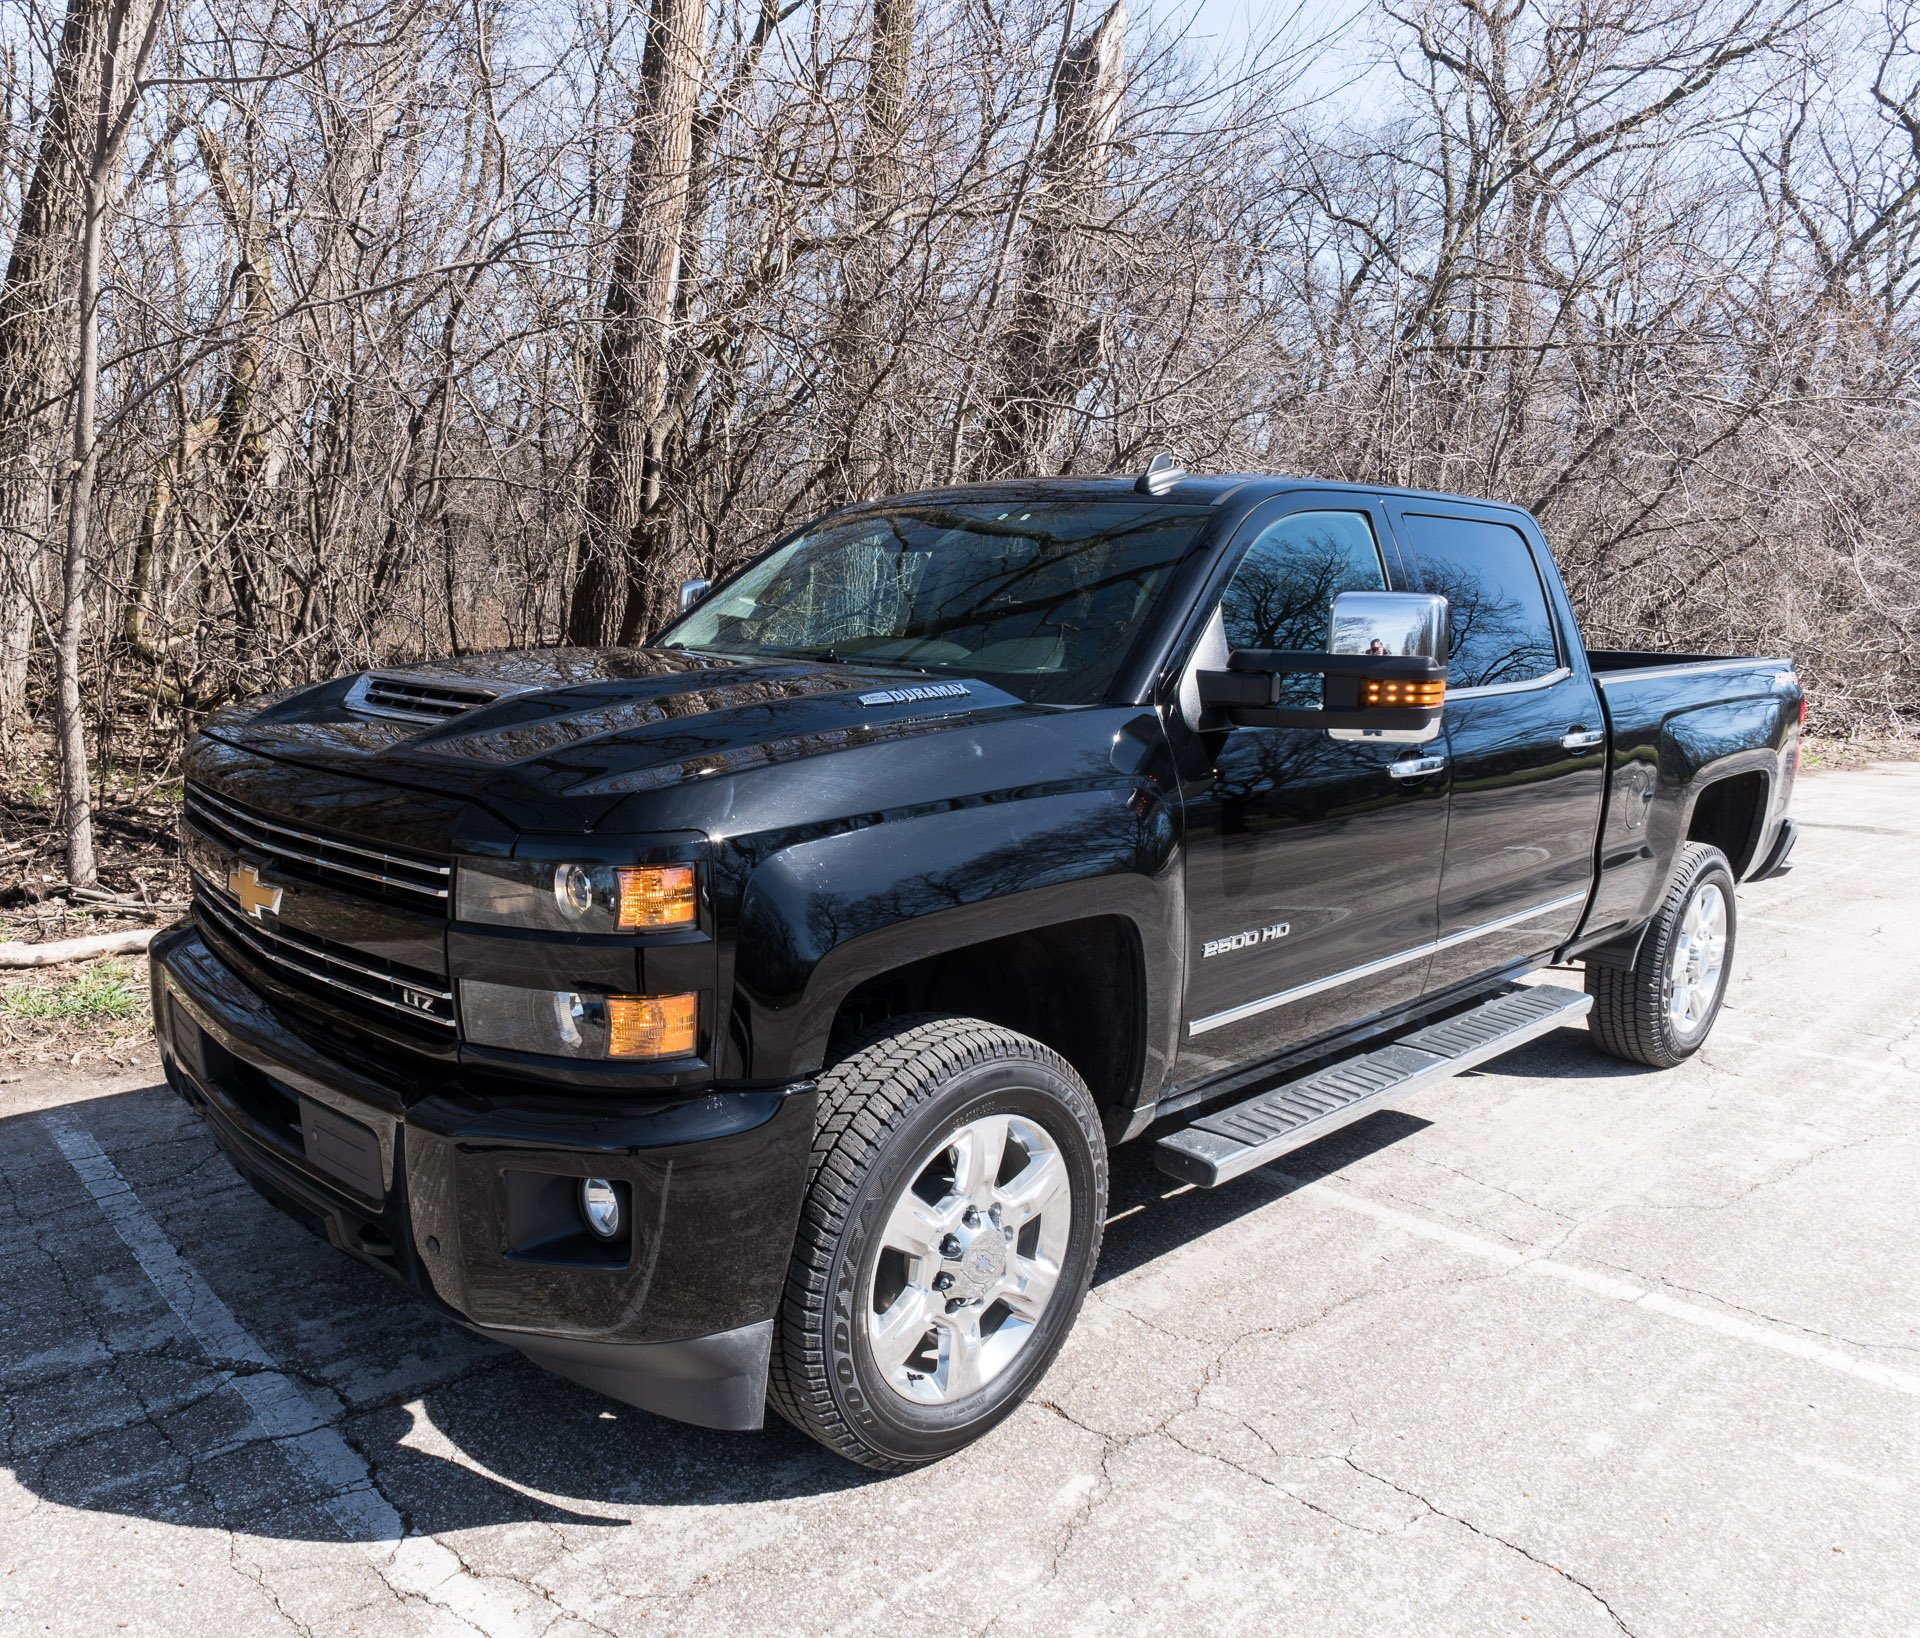 2017 Chevy Silverado 2500 HD Duramax Is One Comfy Heavy Hauler